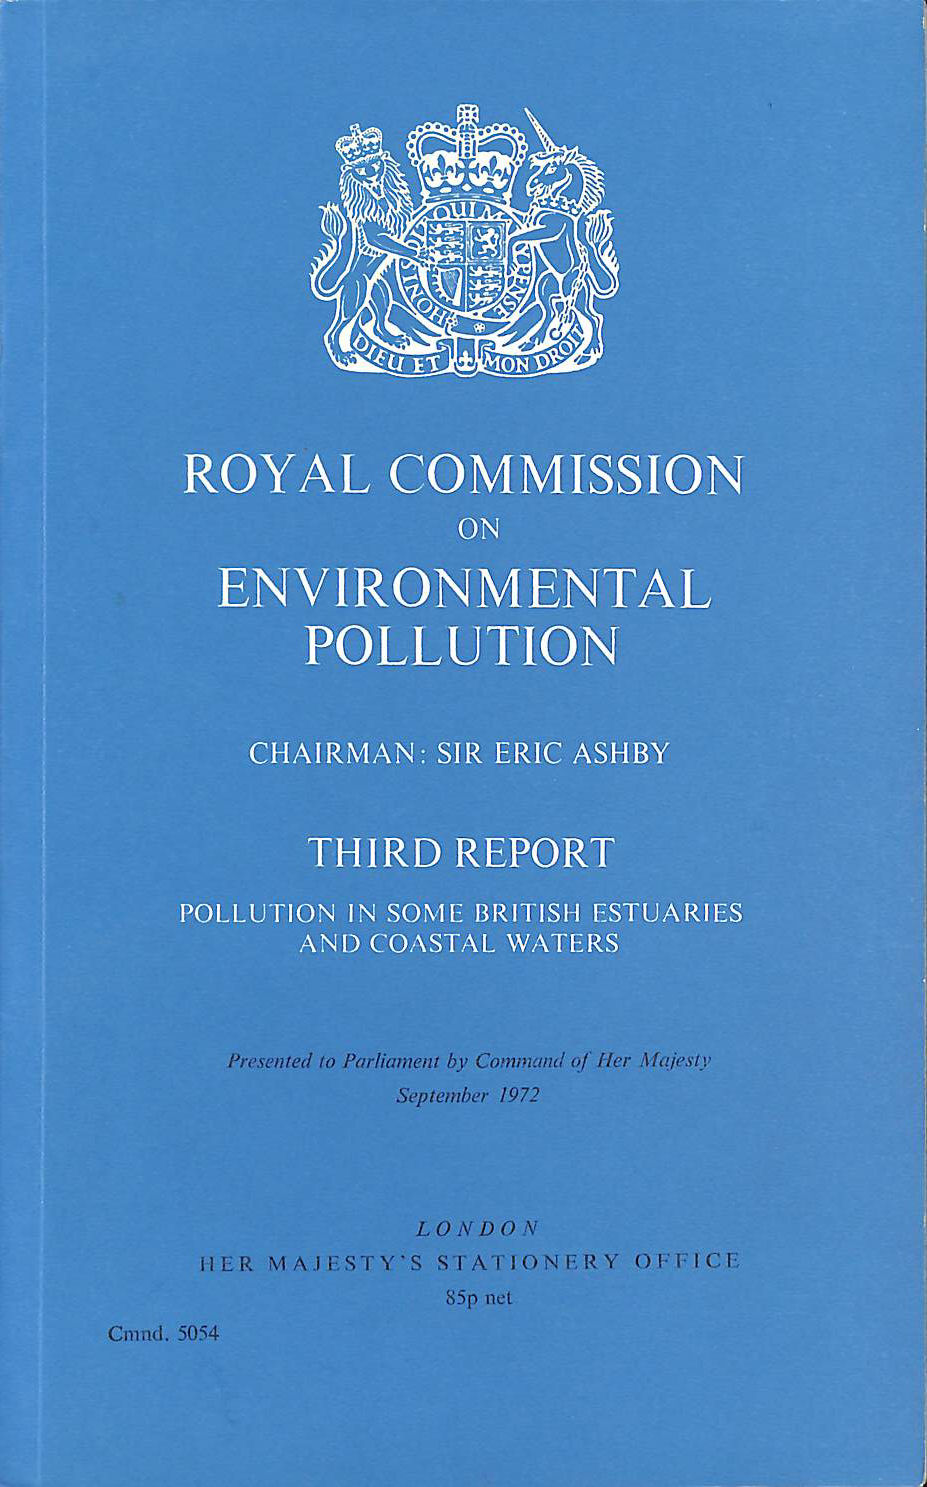 Image for Pollution in Some British Estuaries and Coastal Waters: 3rd Report (Command 5054)